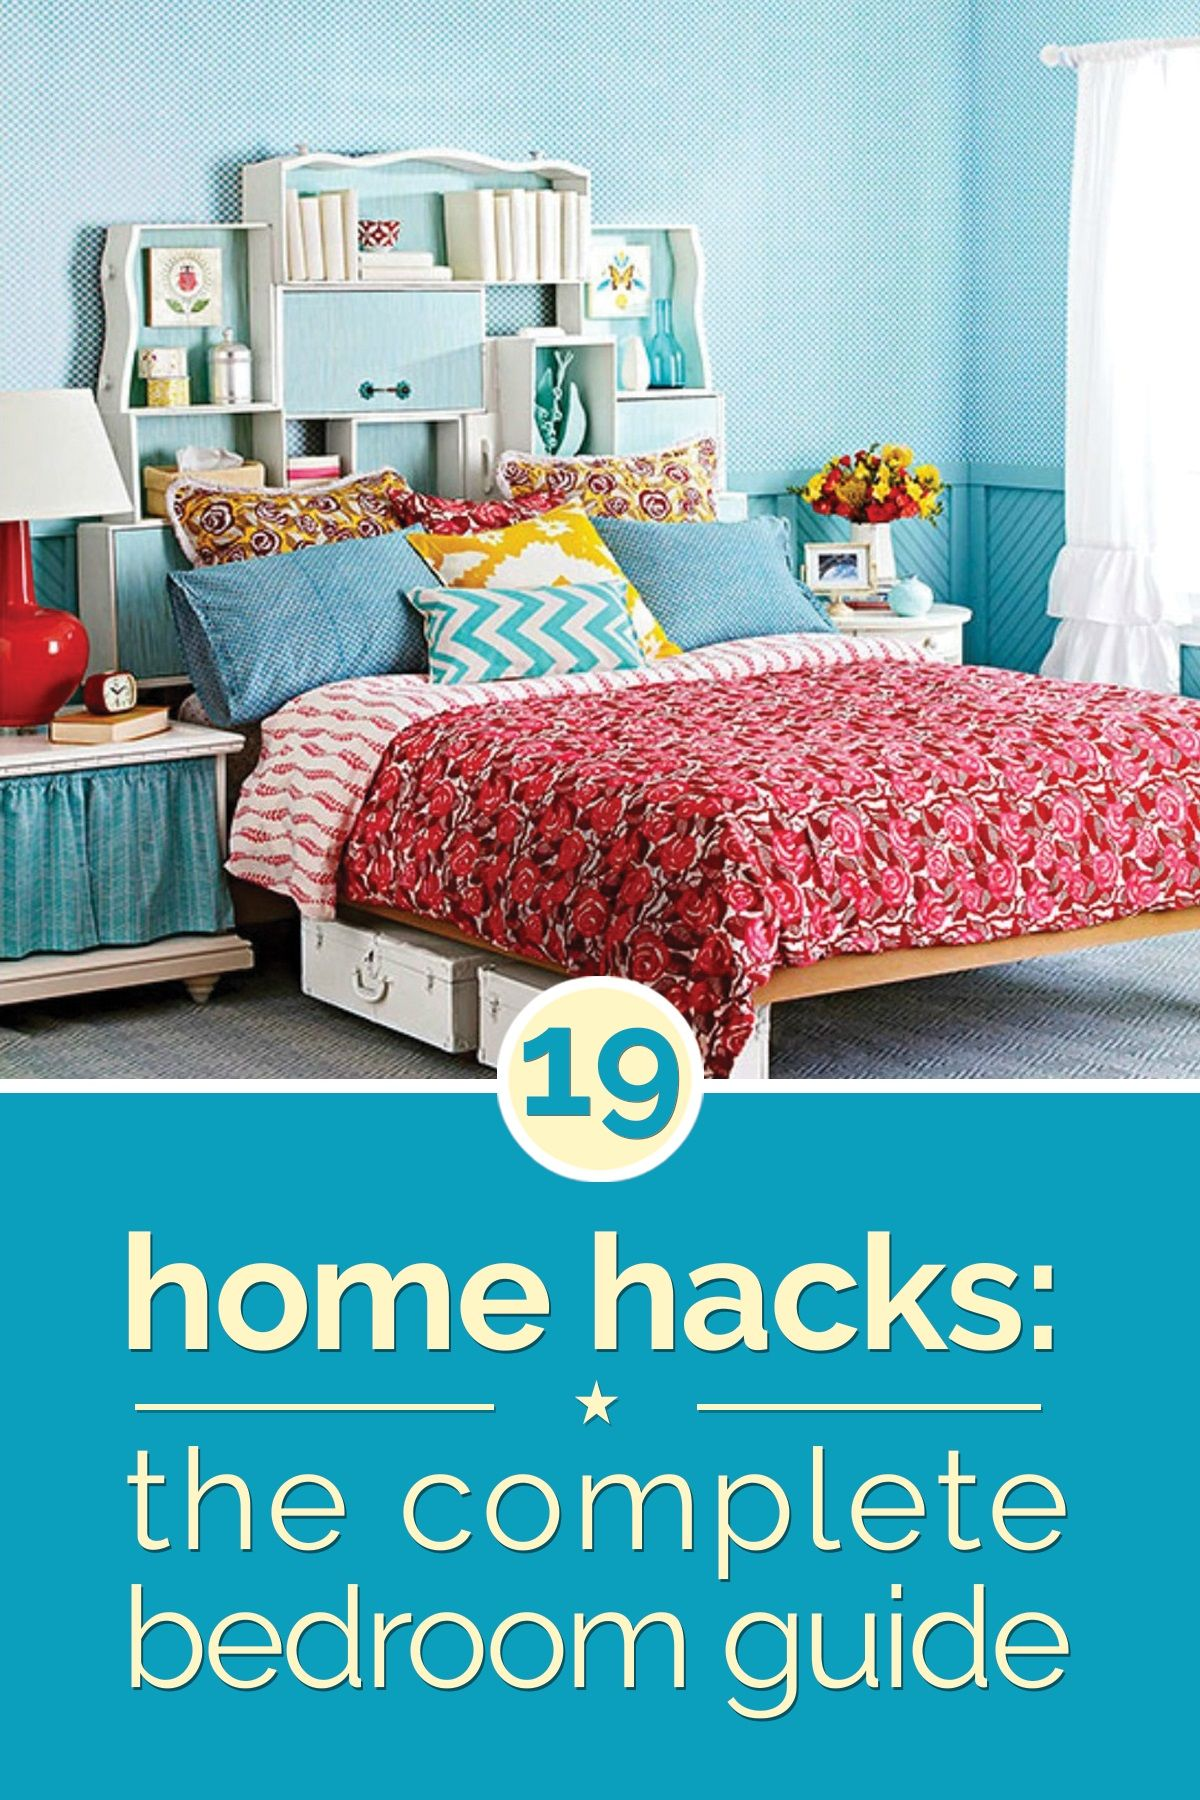 Home Hacks 19 Tips to Organize Your Bedroom Home hacks